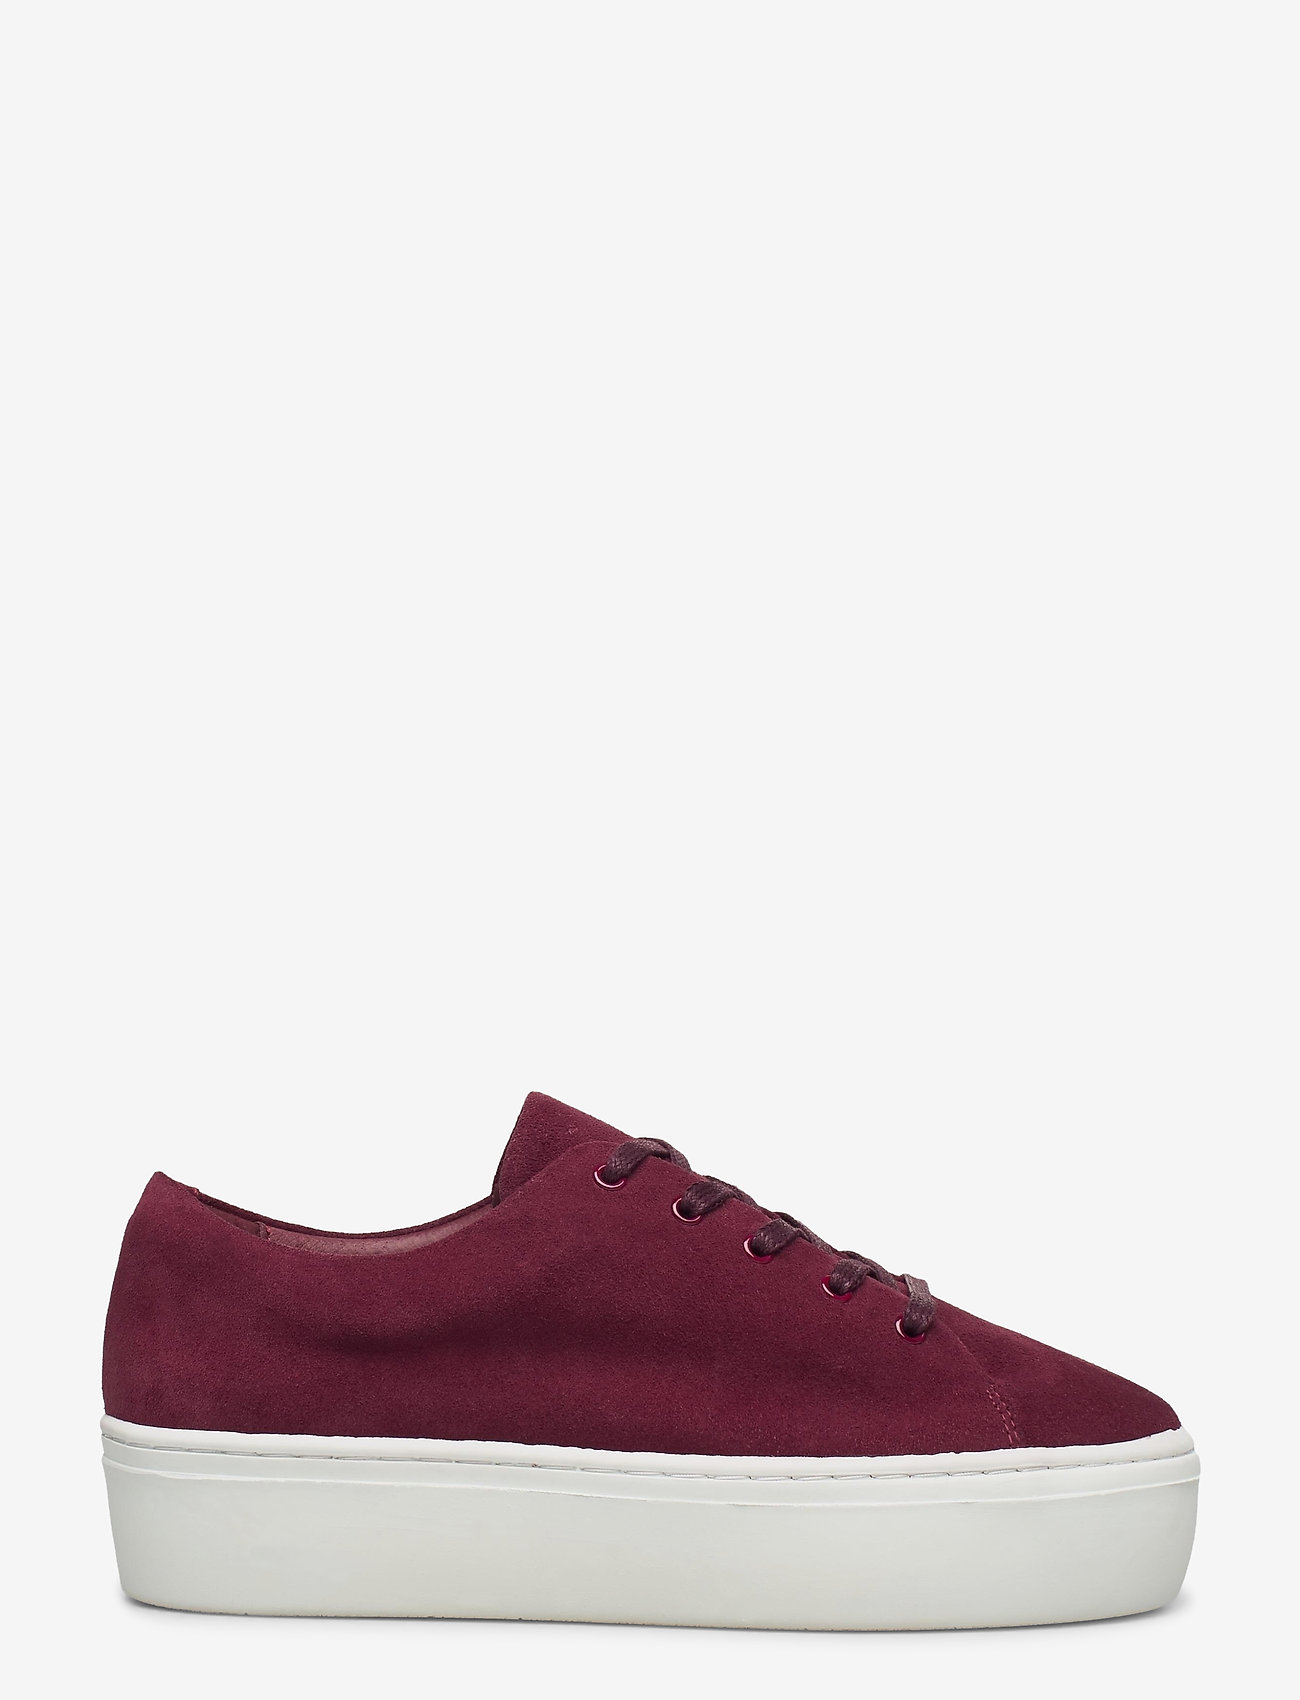 Jennie-Ellen - BAE - lage sneakers - burgundy suede leather - 1